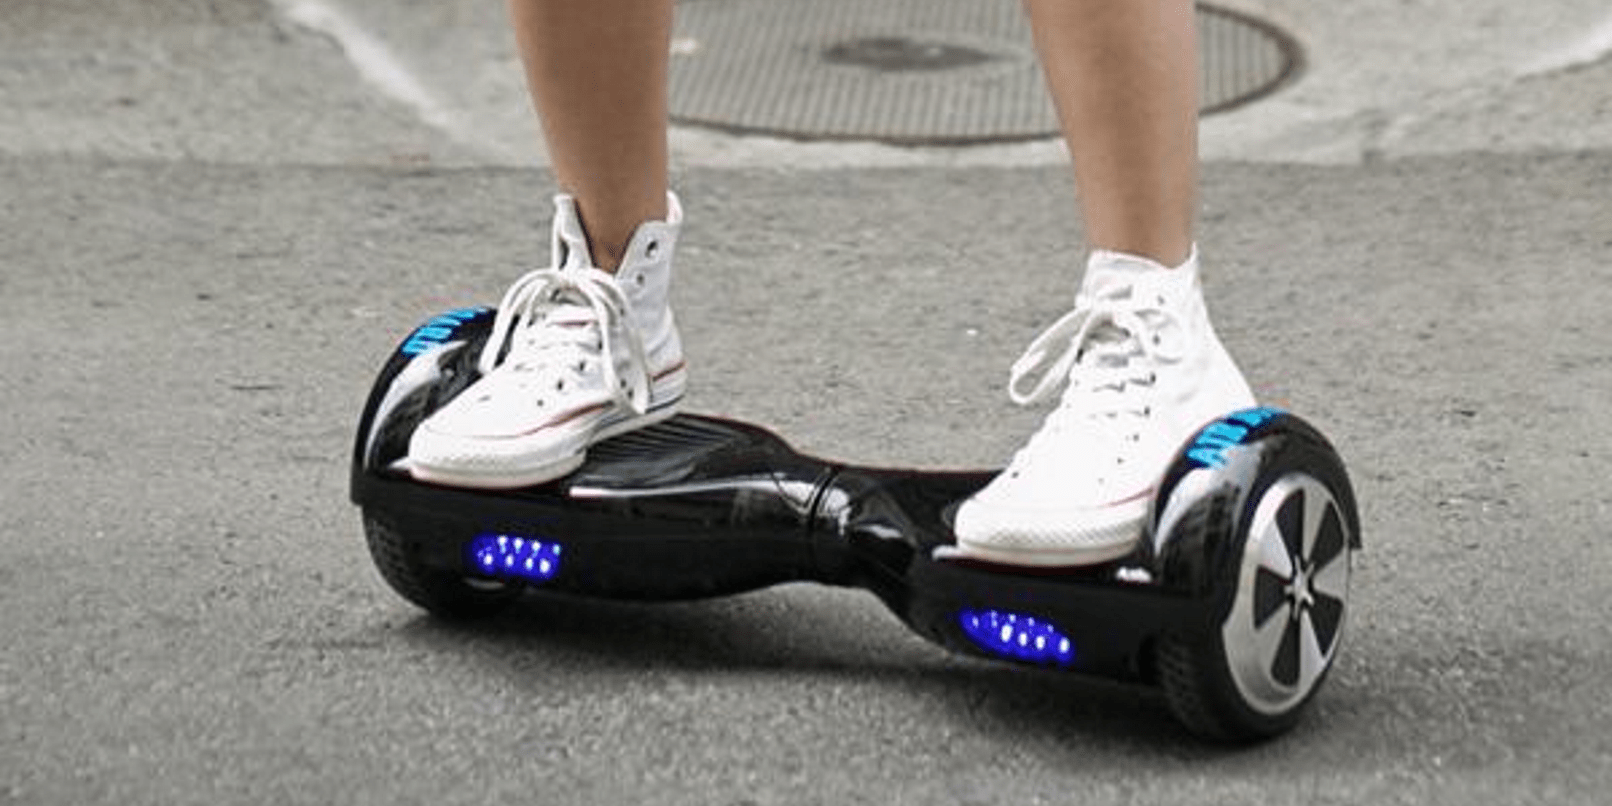 hoverboard - Rules and fines for electric skates and skates